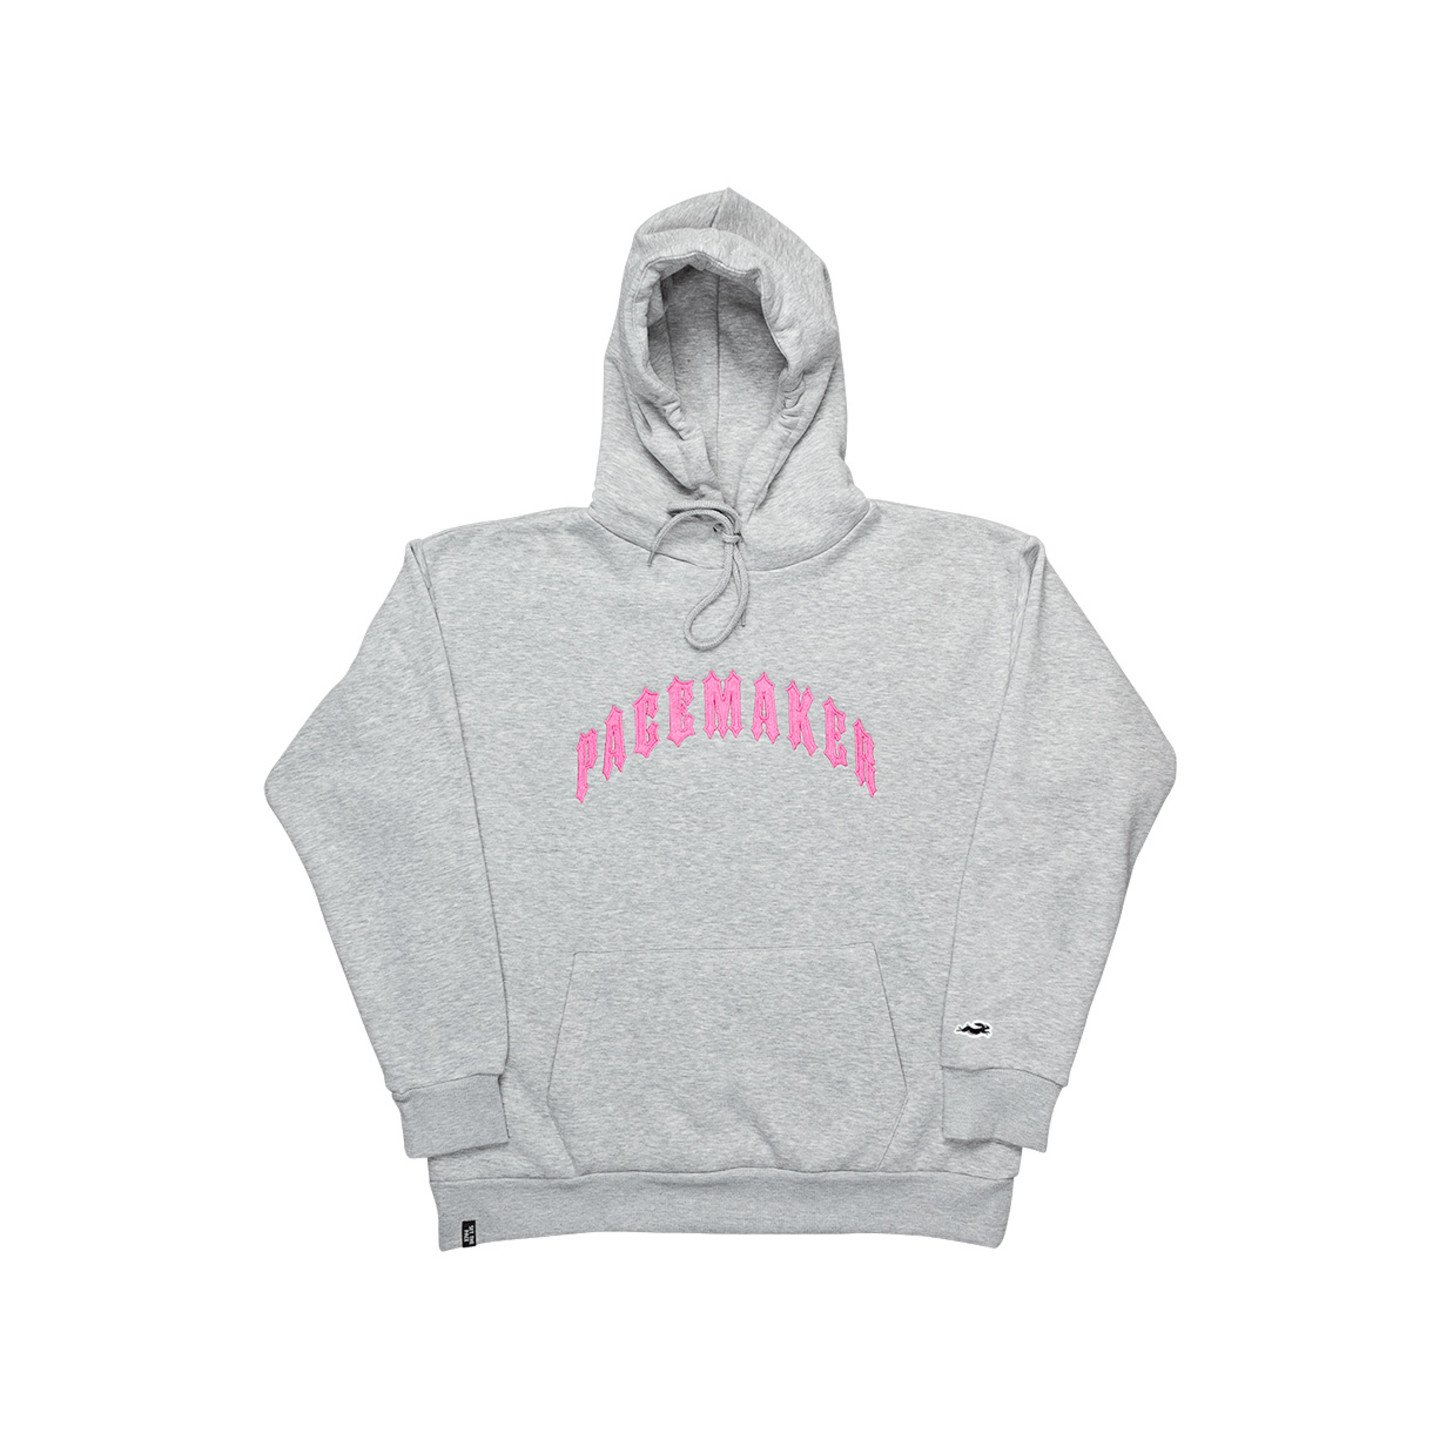 Pacemaker Pasics Big Logo Hoodie Light Grey Heather / Pink PM015